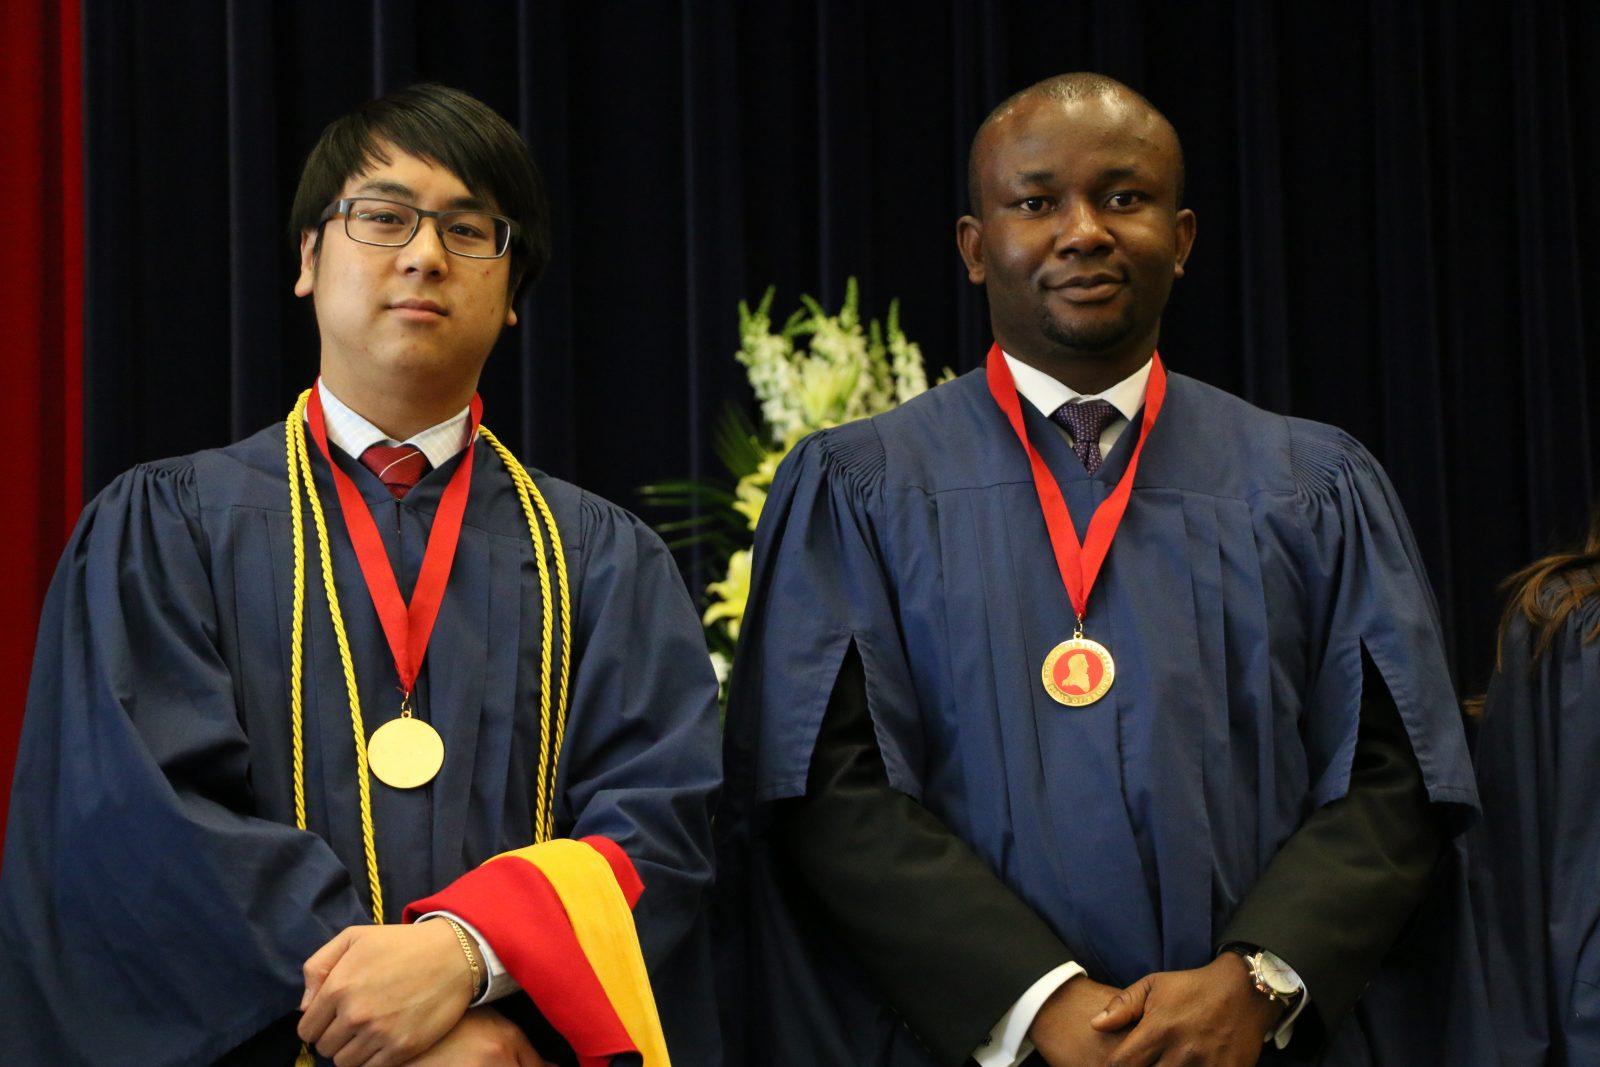 Board of Trustees Spirit of Brock award winners from the Faculty of Mathematics and Science David Nguyen, undergrad, and graduate student Chimaobi Amadi.